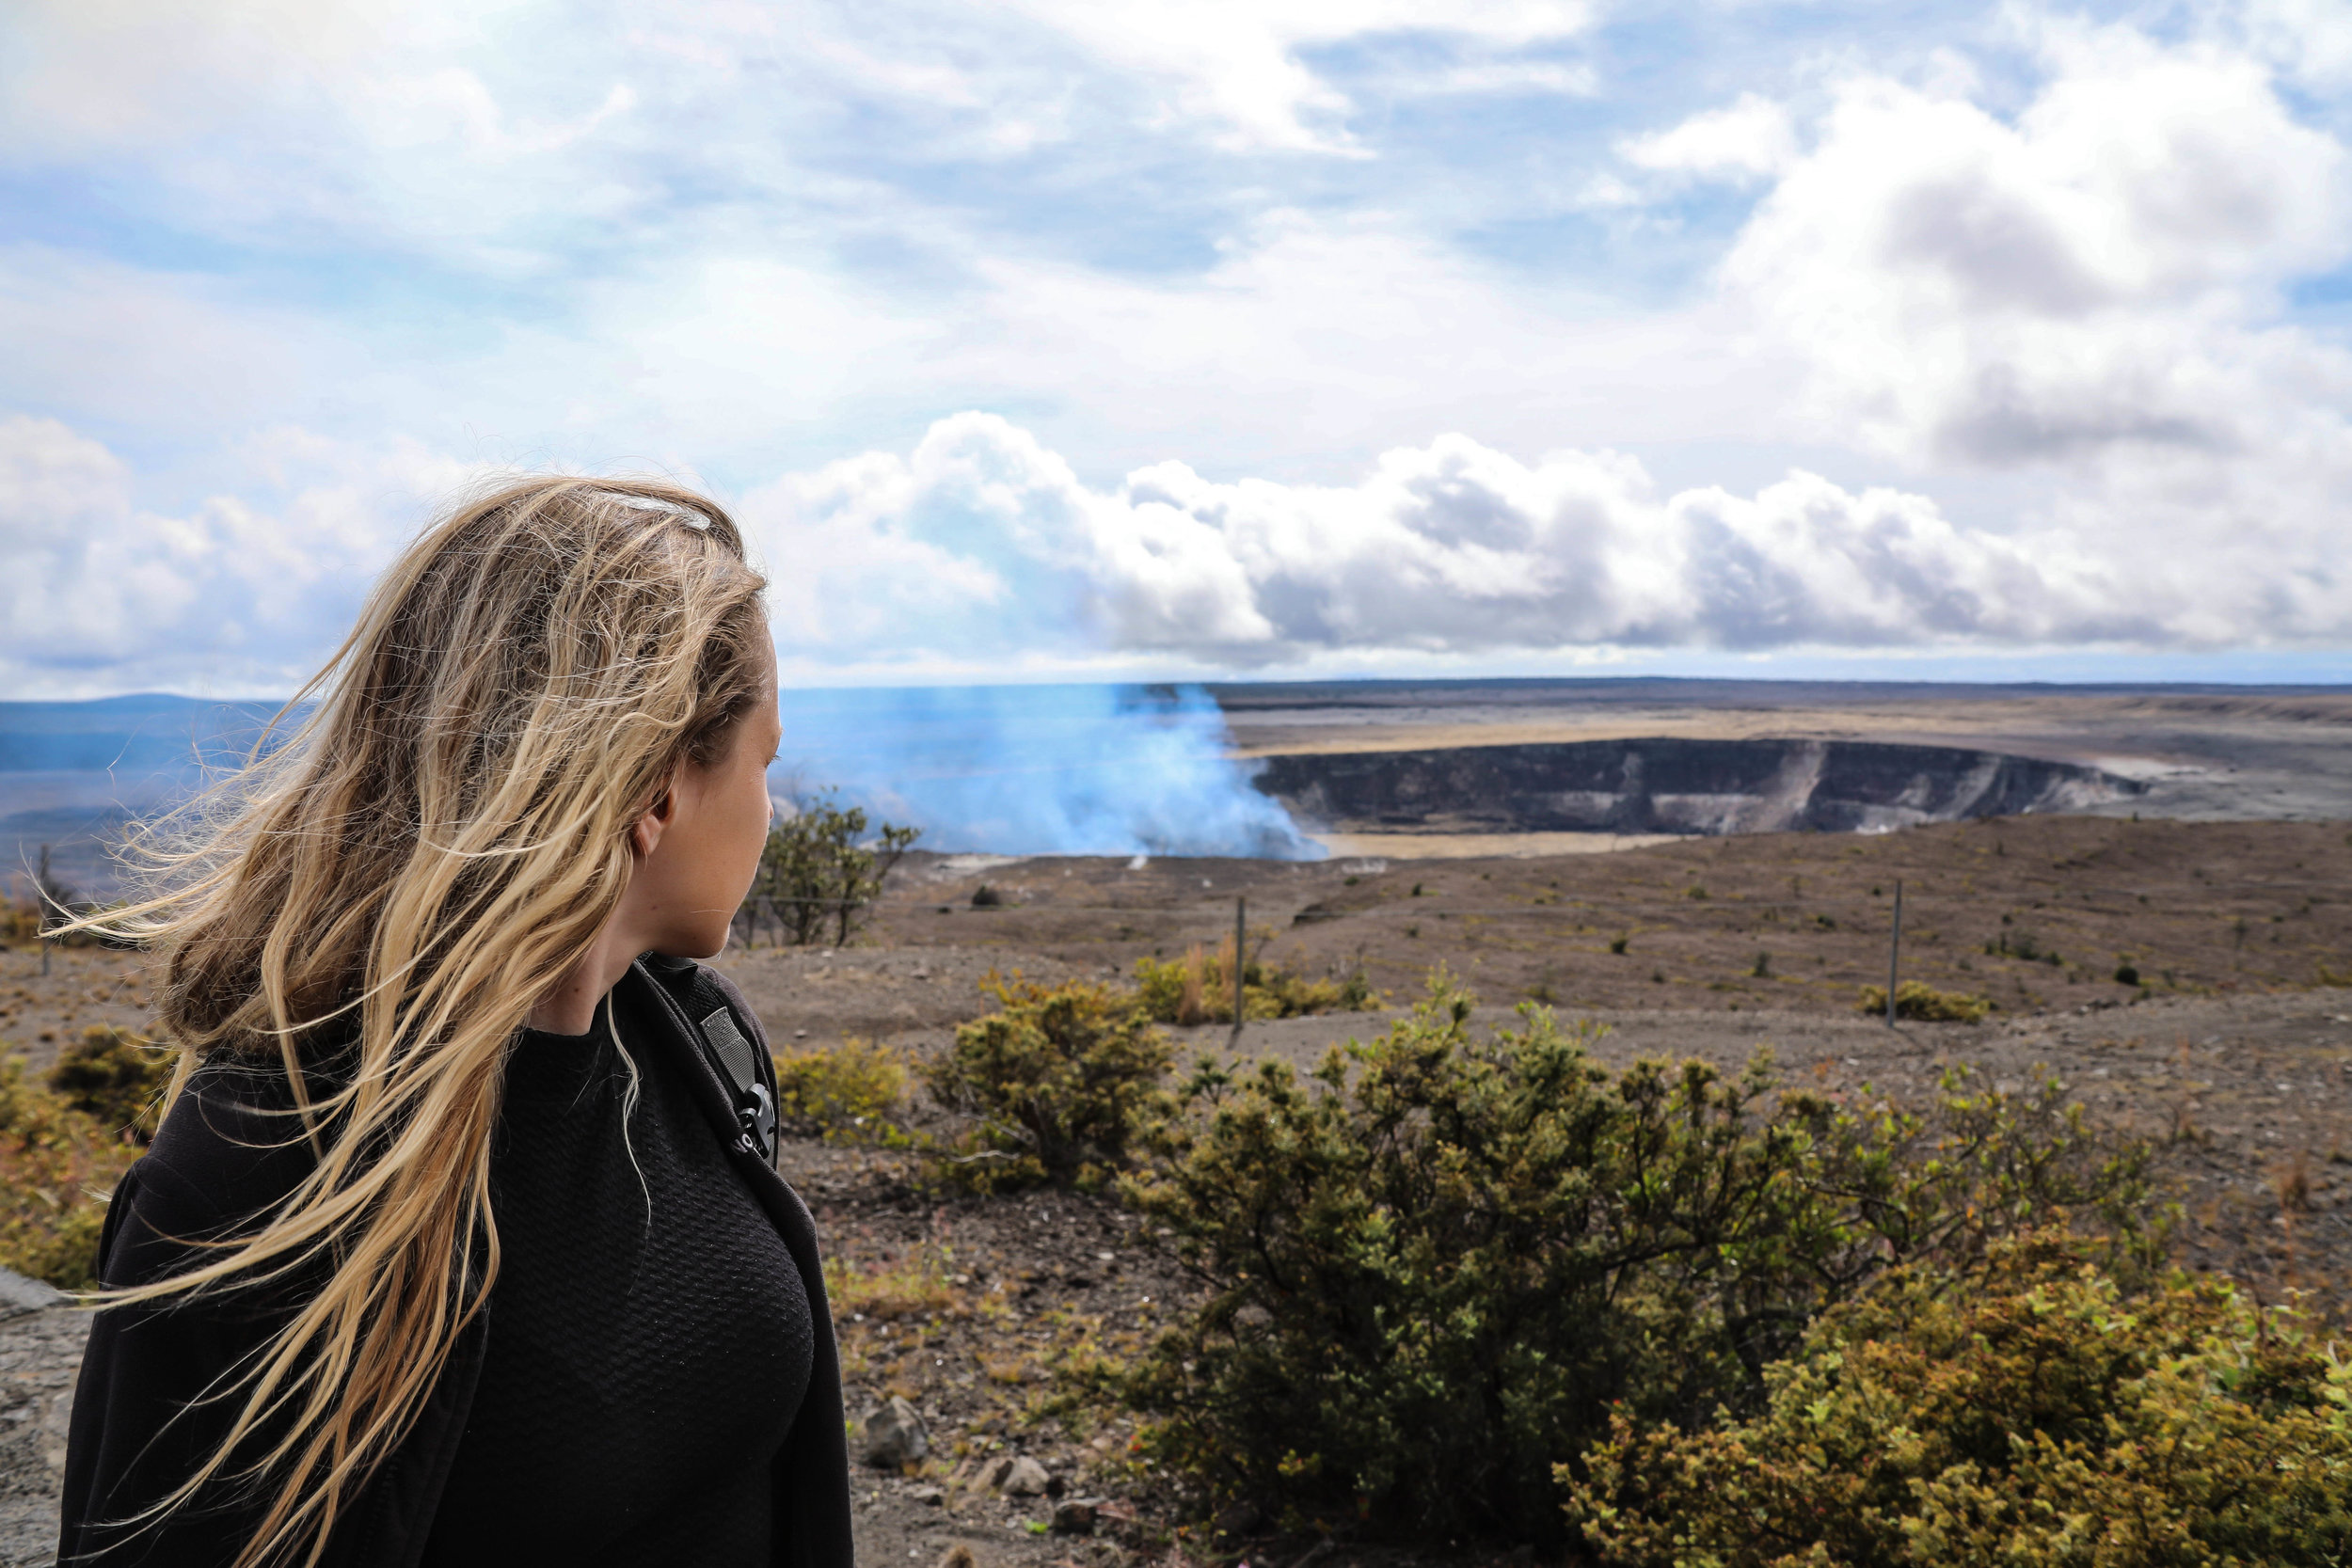 Hiking near Kilauea Volcano in Hawaii Volcanoes National Park.